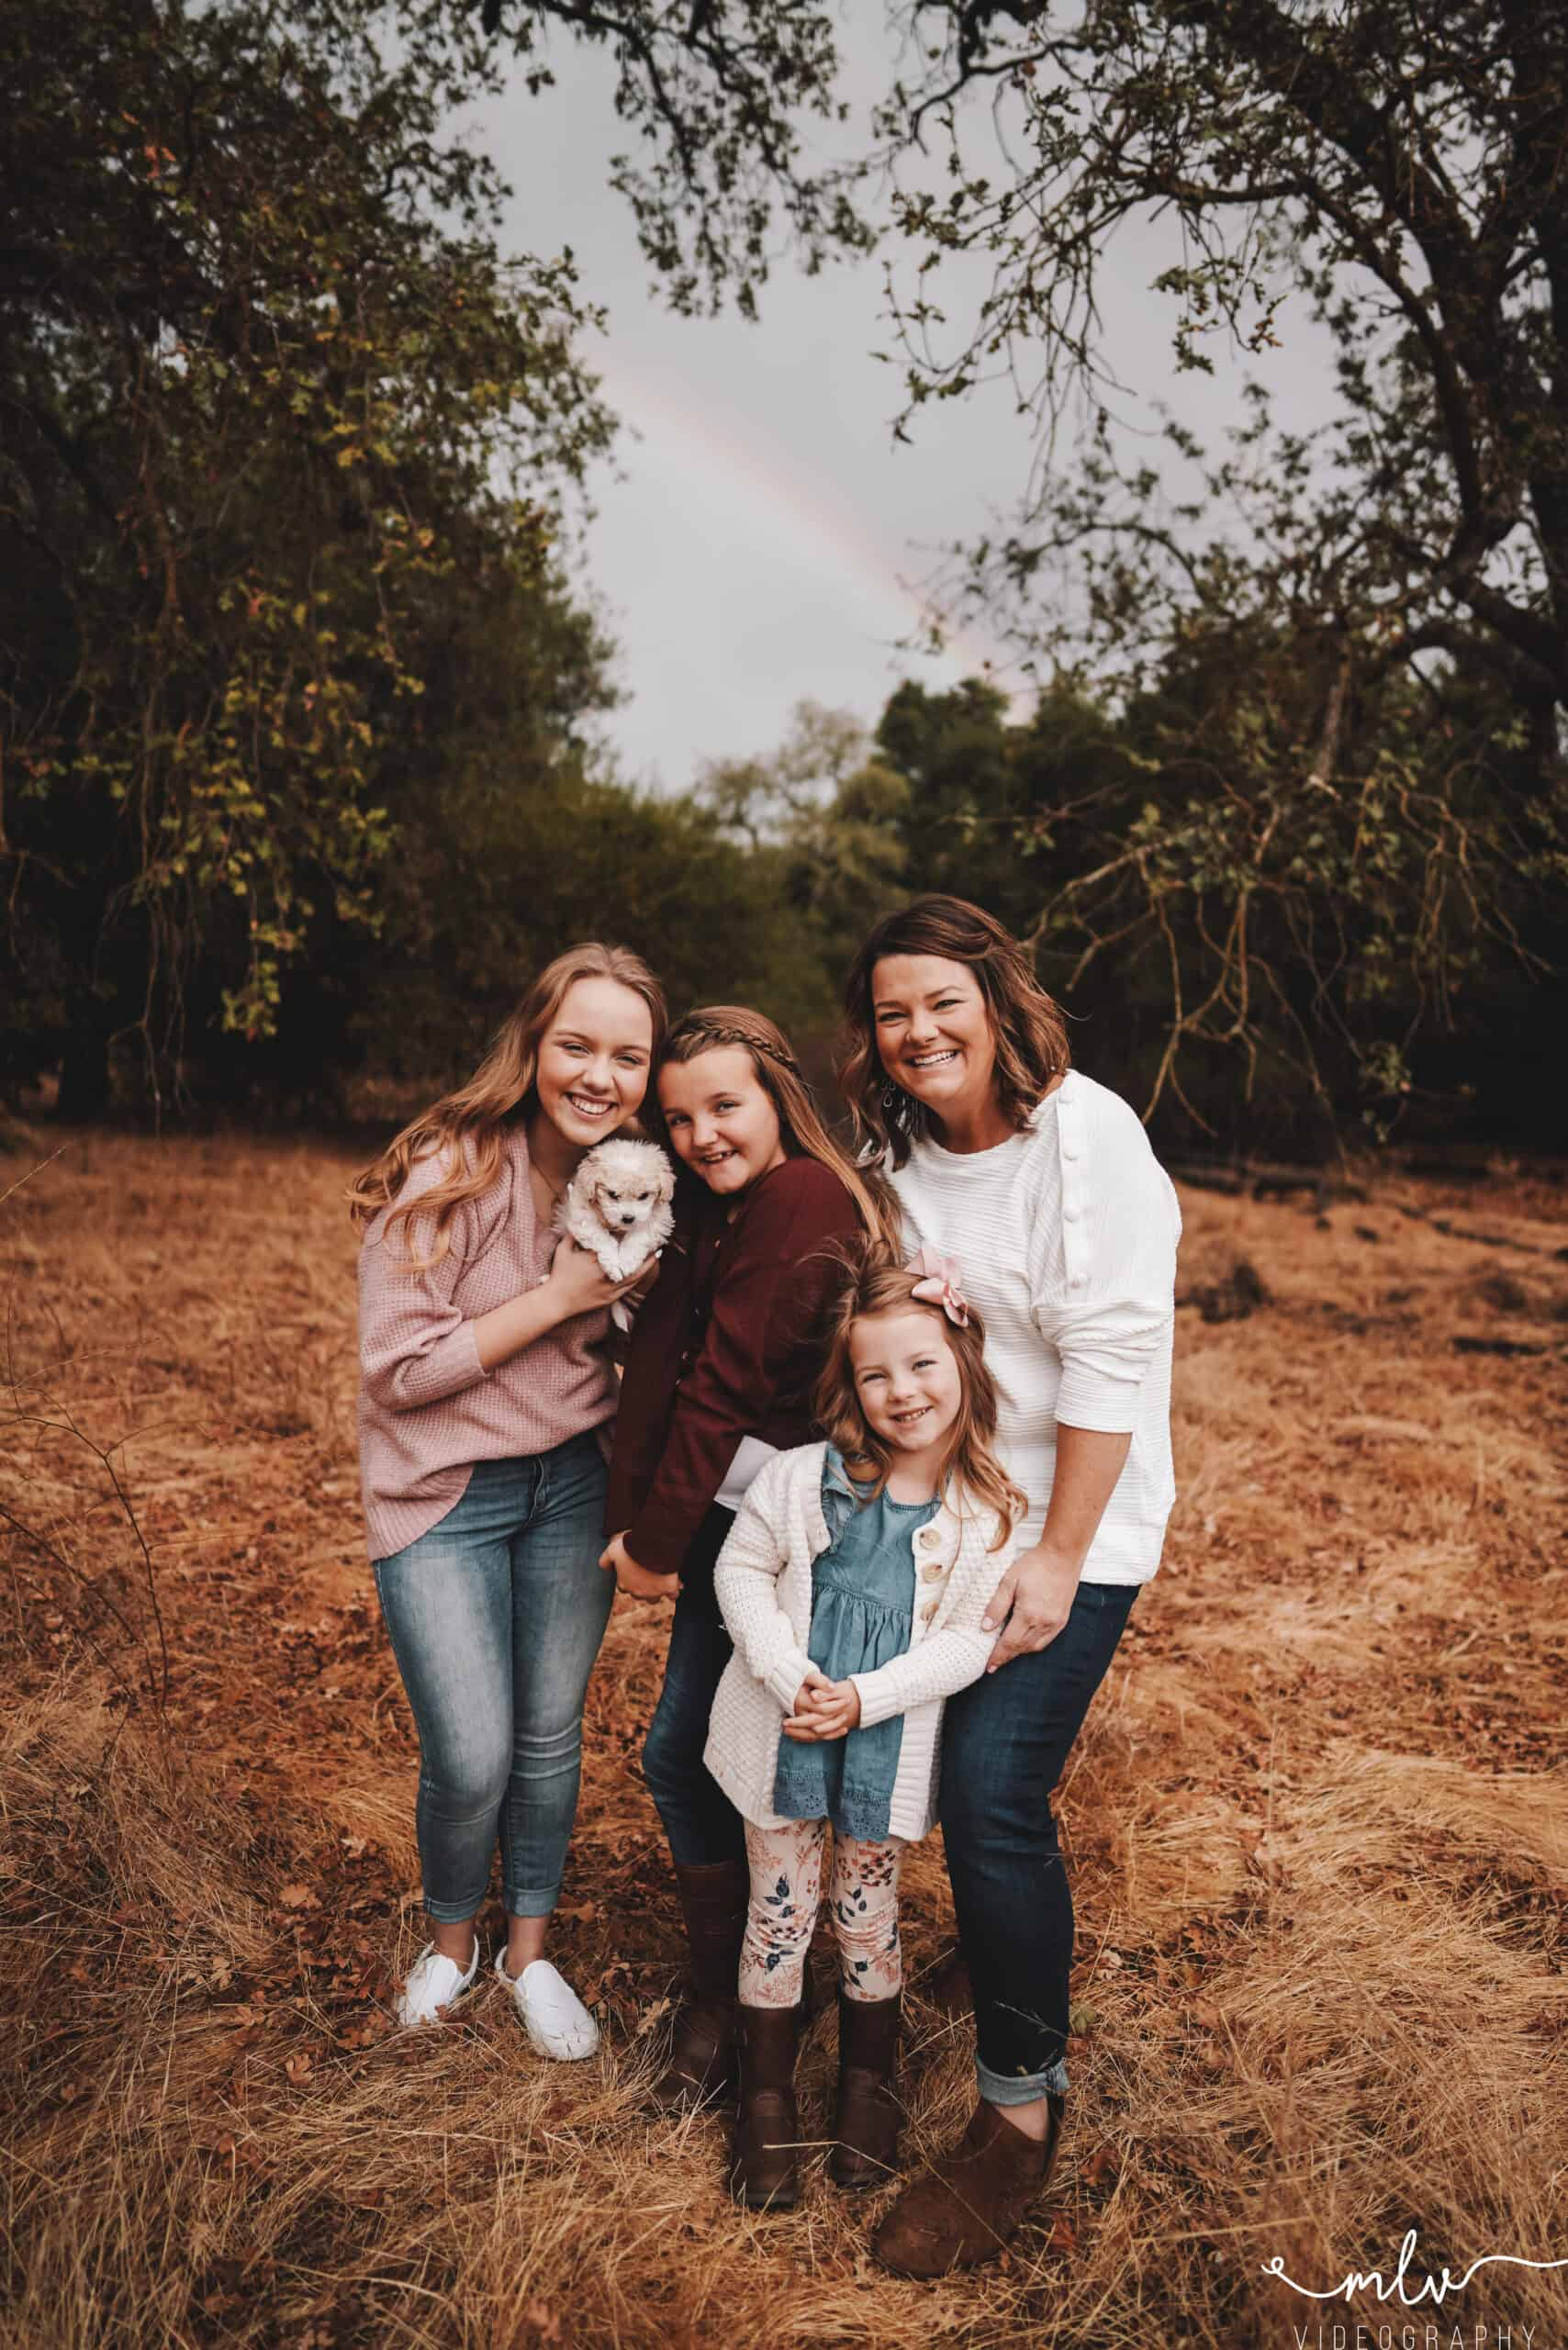 Family Photography at Guadalupe Oak Grove Trail in San Jose, California.